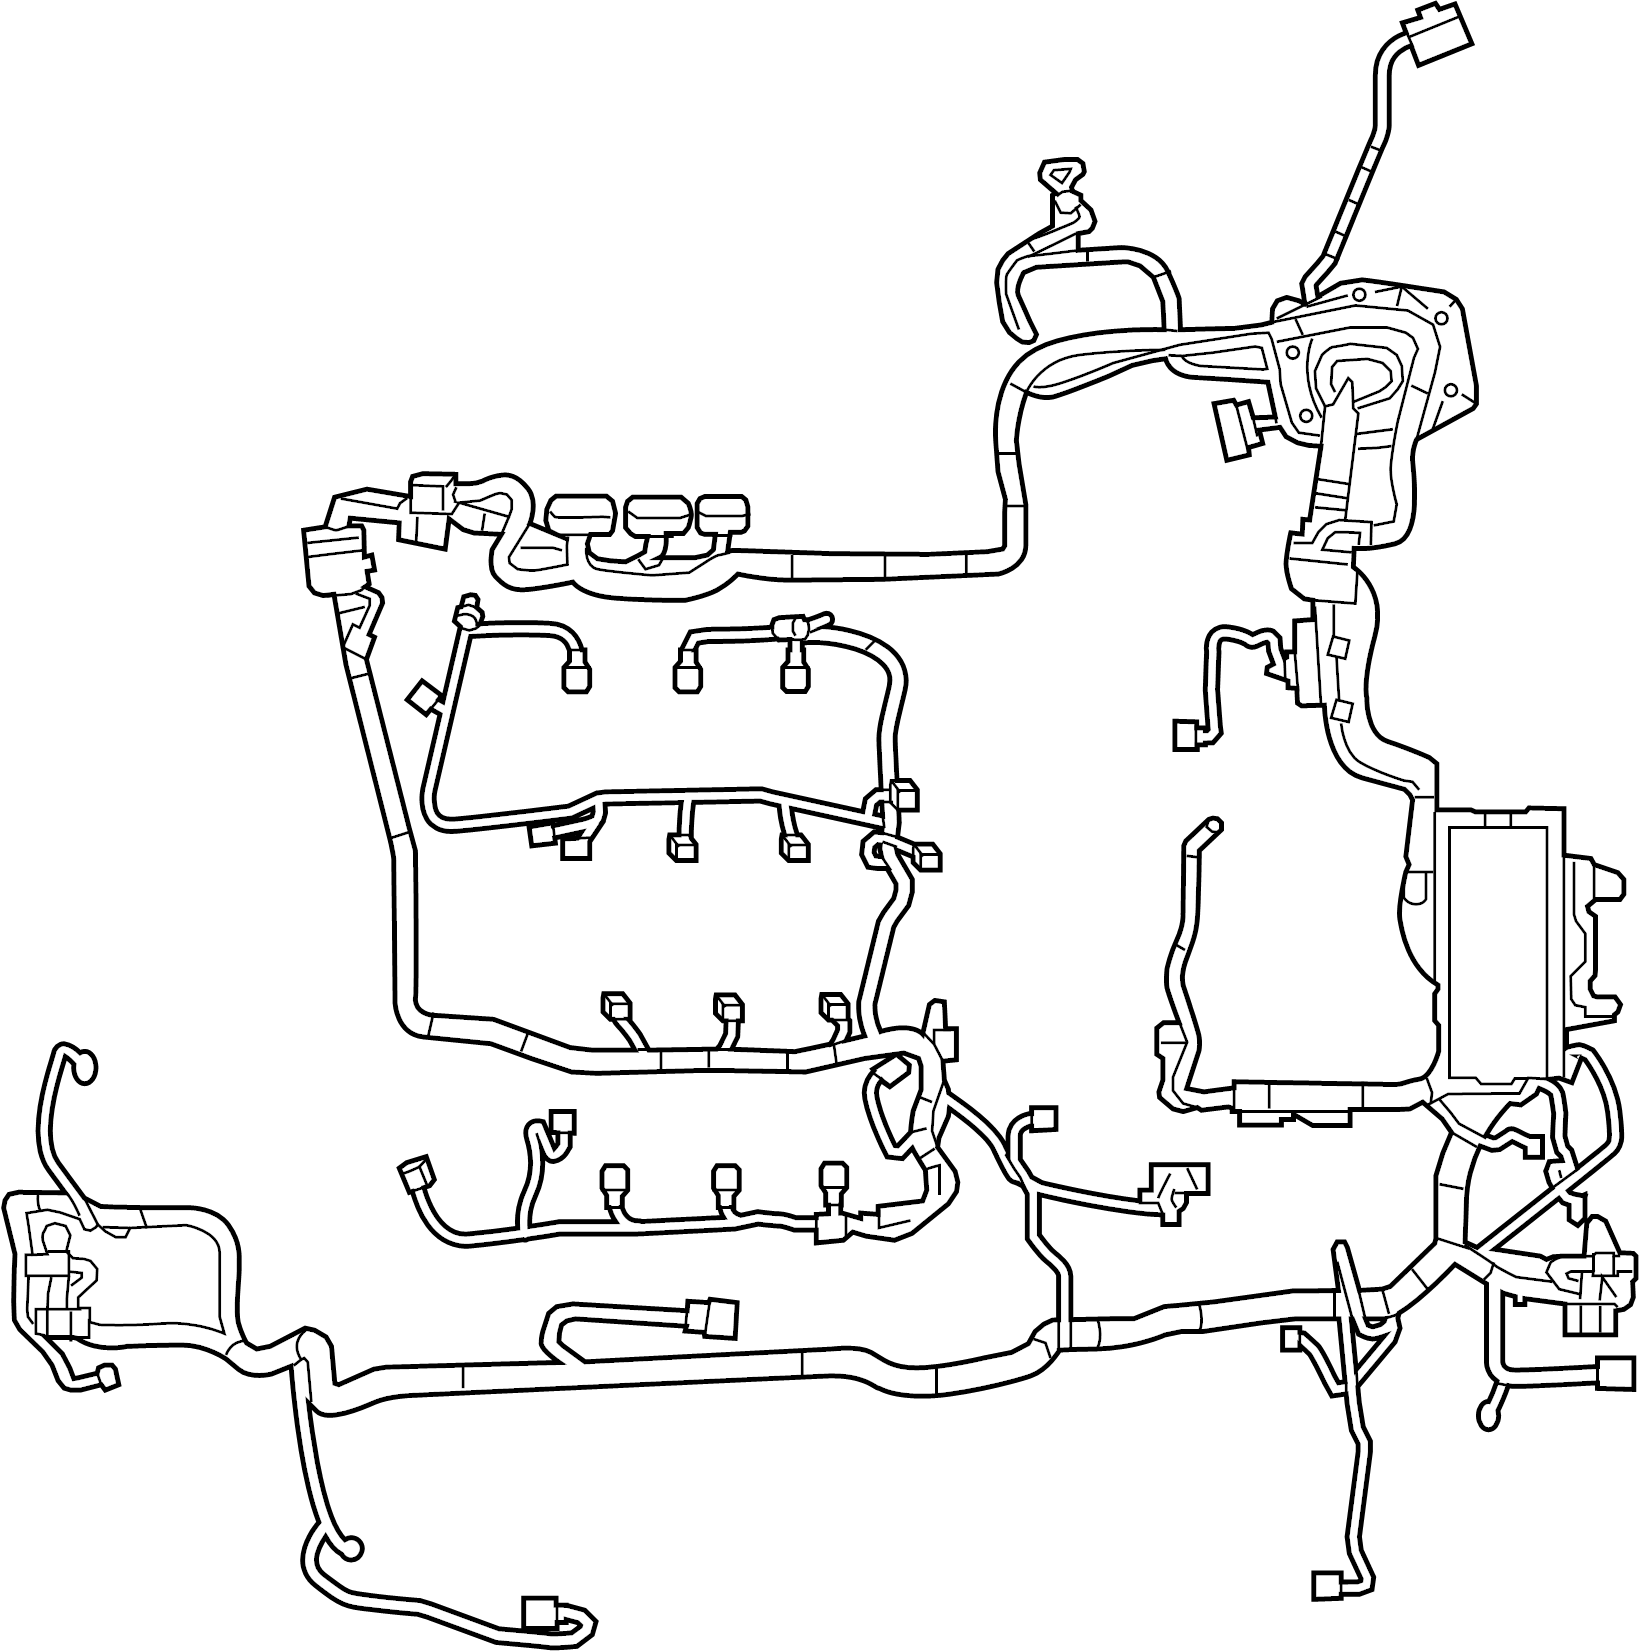 Ford Police Interceptor Sedan Wire Harness Wiring